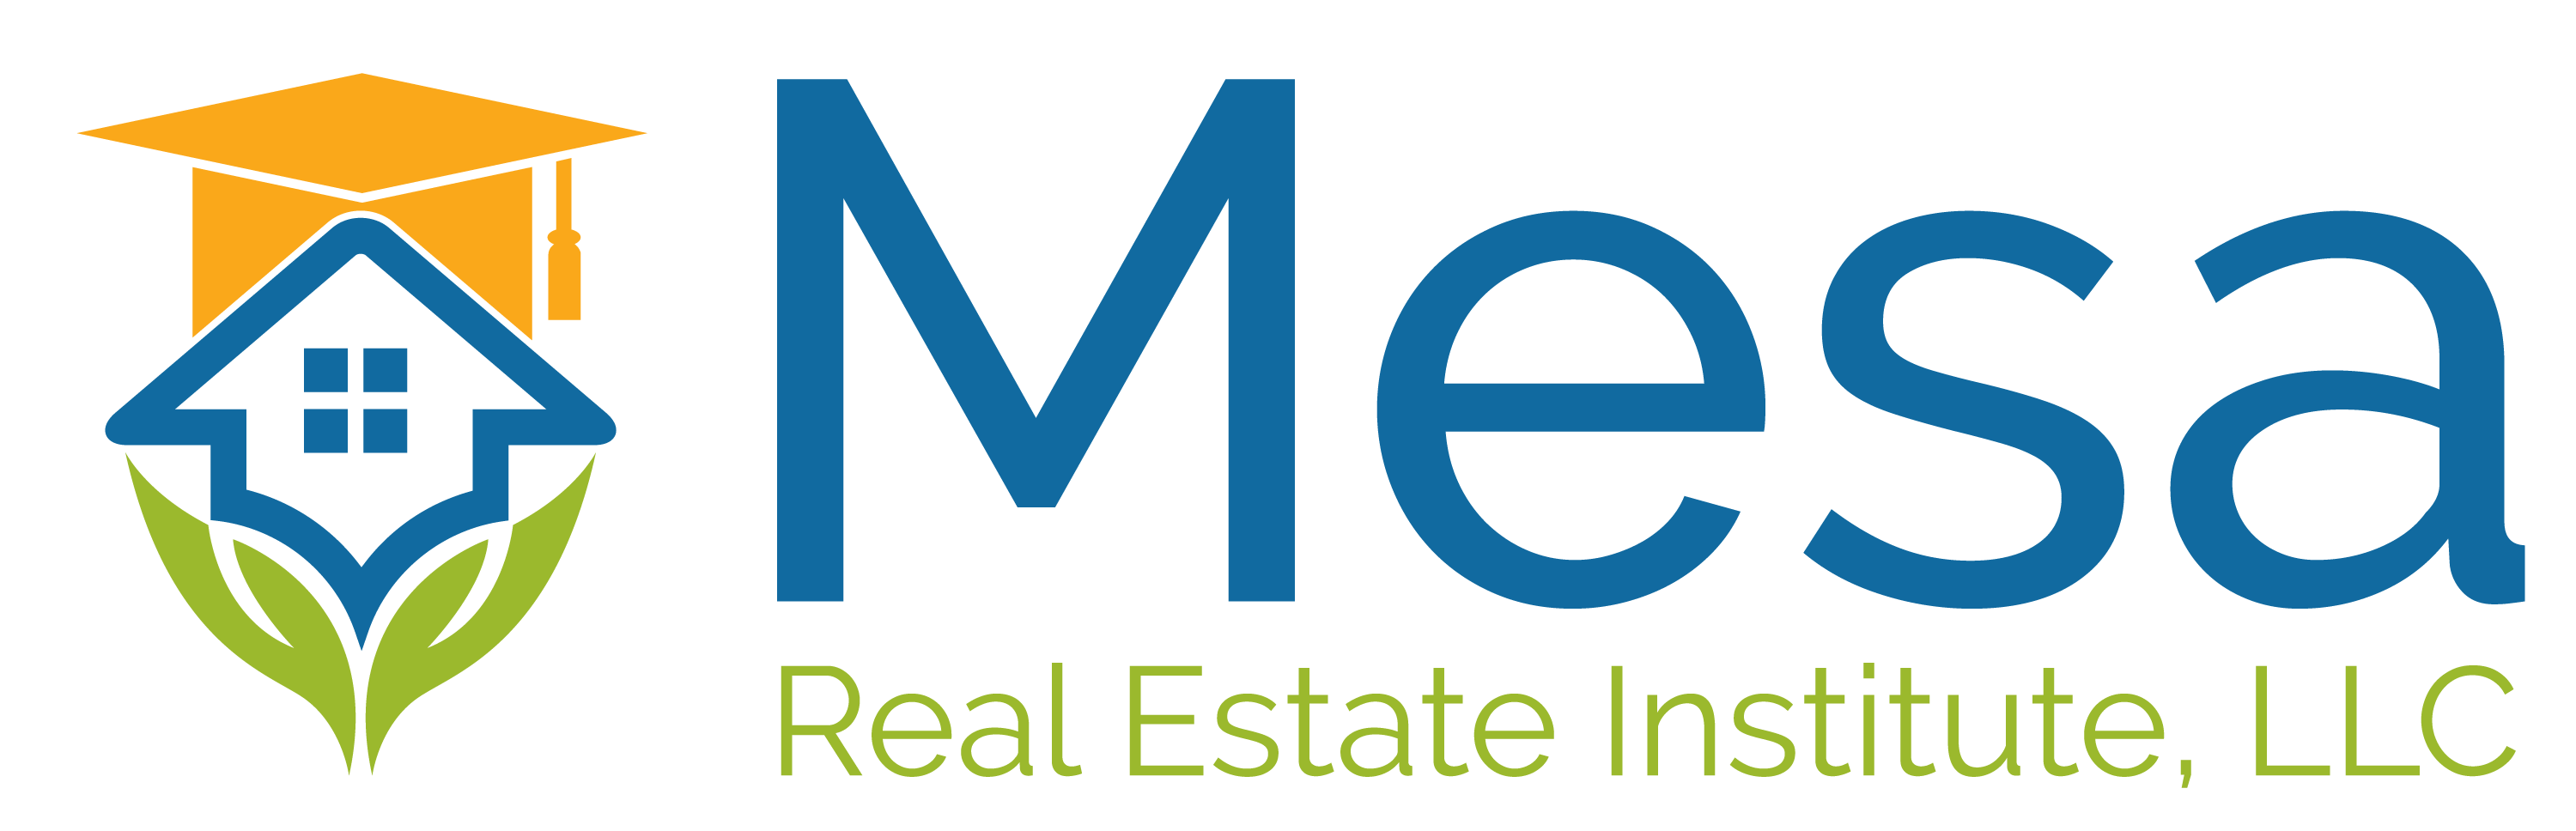 Mesa REI Provides Continuing Education Classes to Realtors